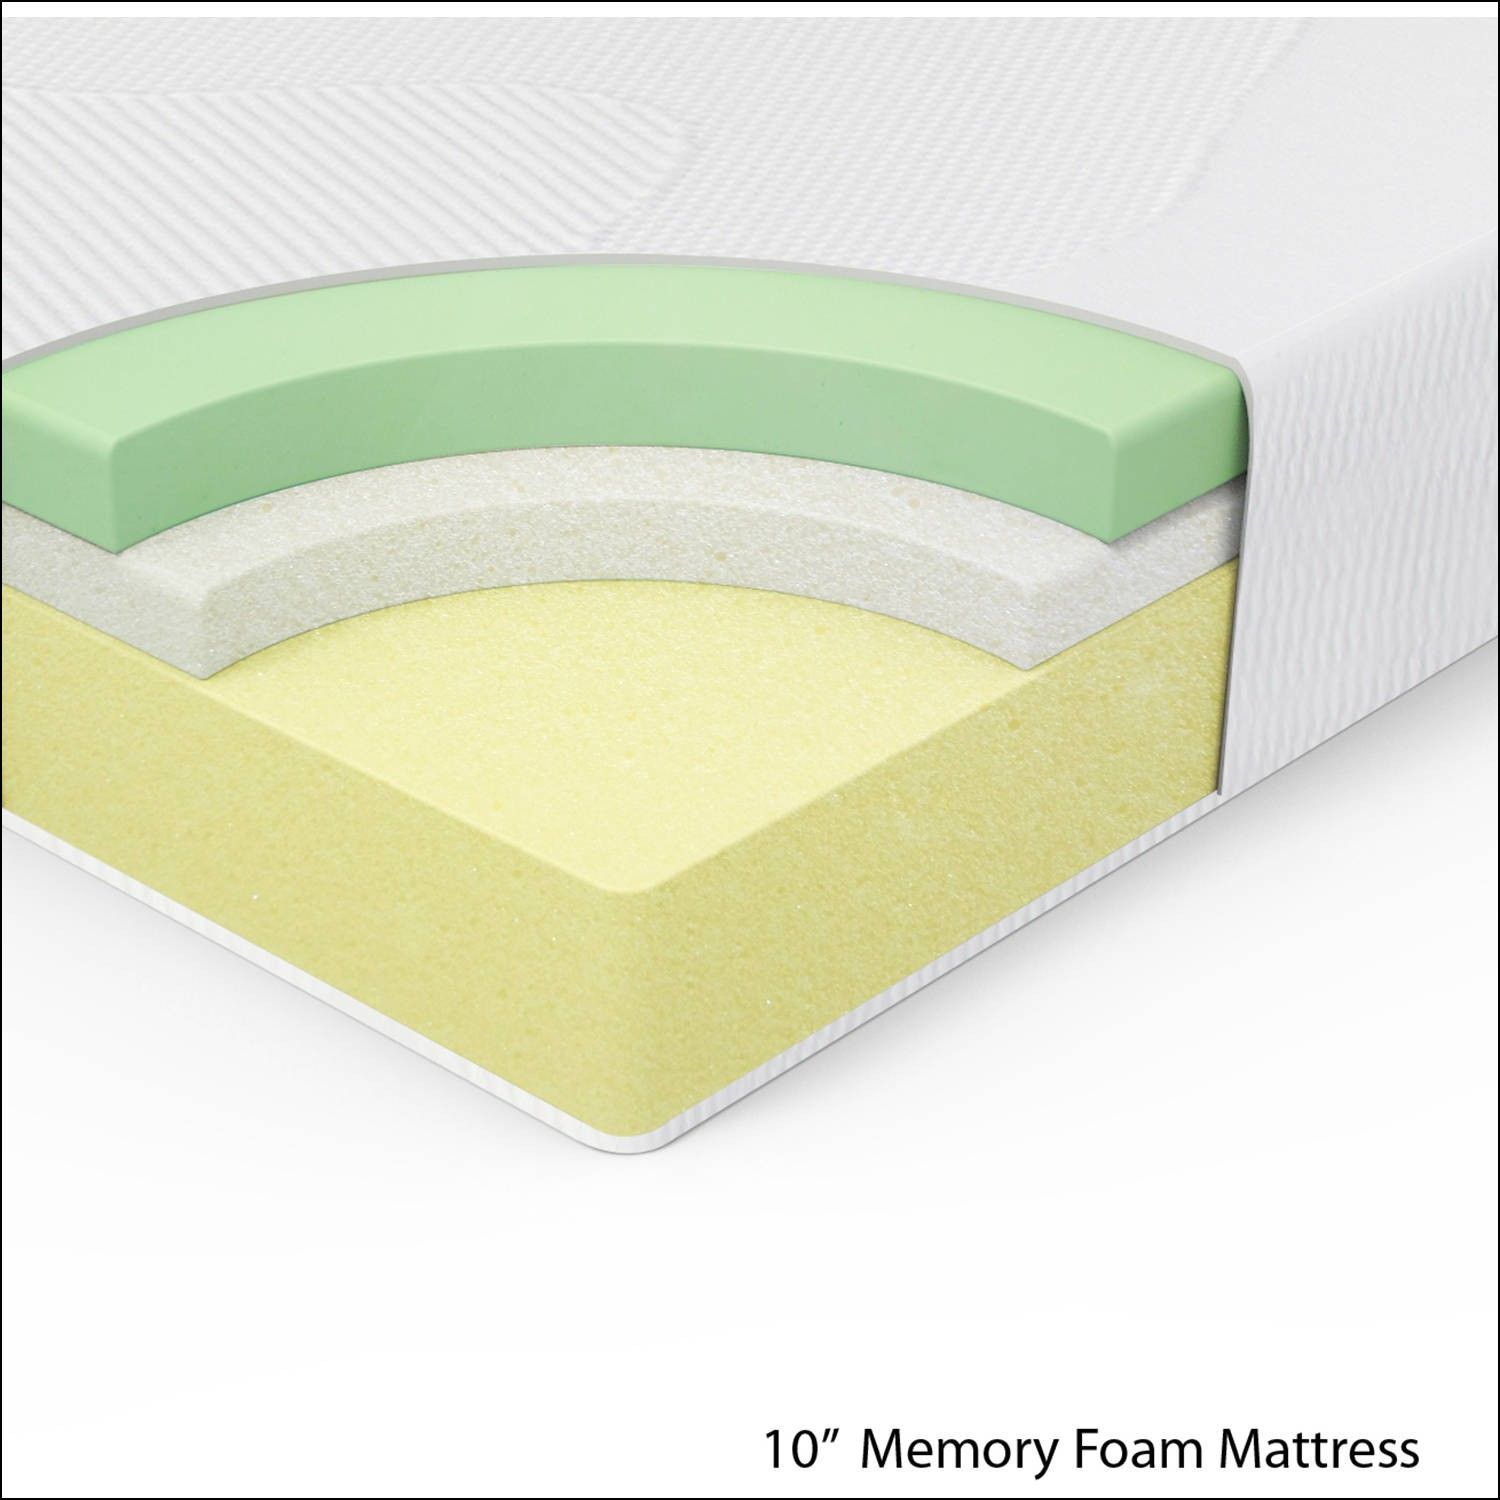 fitted sheets for memory foam mattress Sheets for Memory Foam Mattresses #CheapMemoryFoam | Cheap Memory  fitted sheets for memory foam mattress